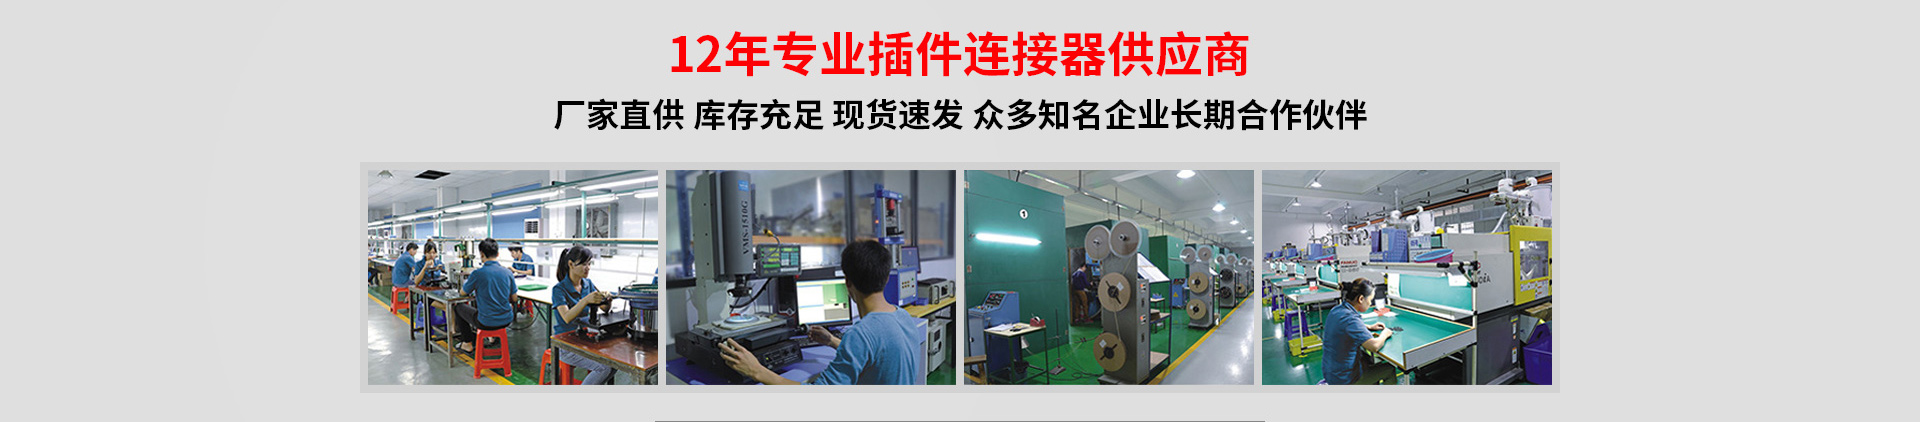 https://www.winpin.cn/data/images/slide/20191219112441_524.jpg